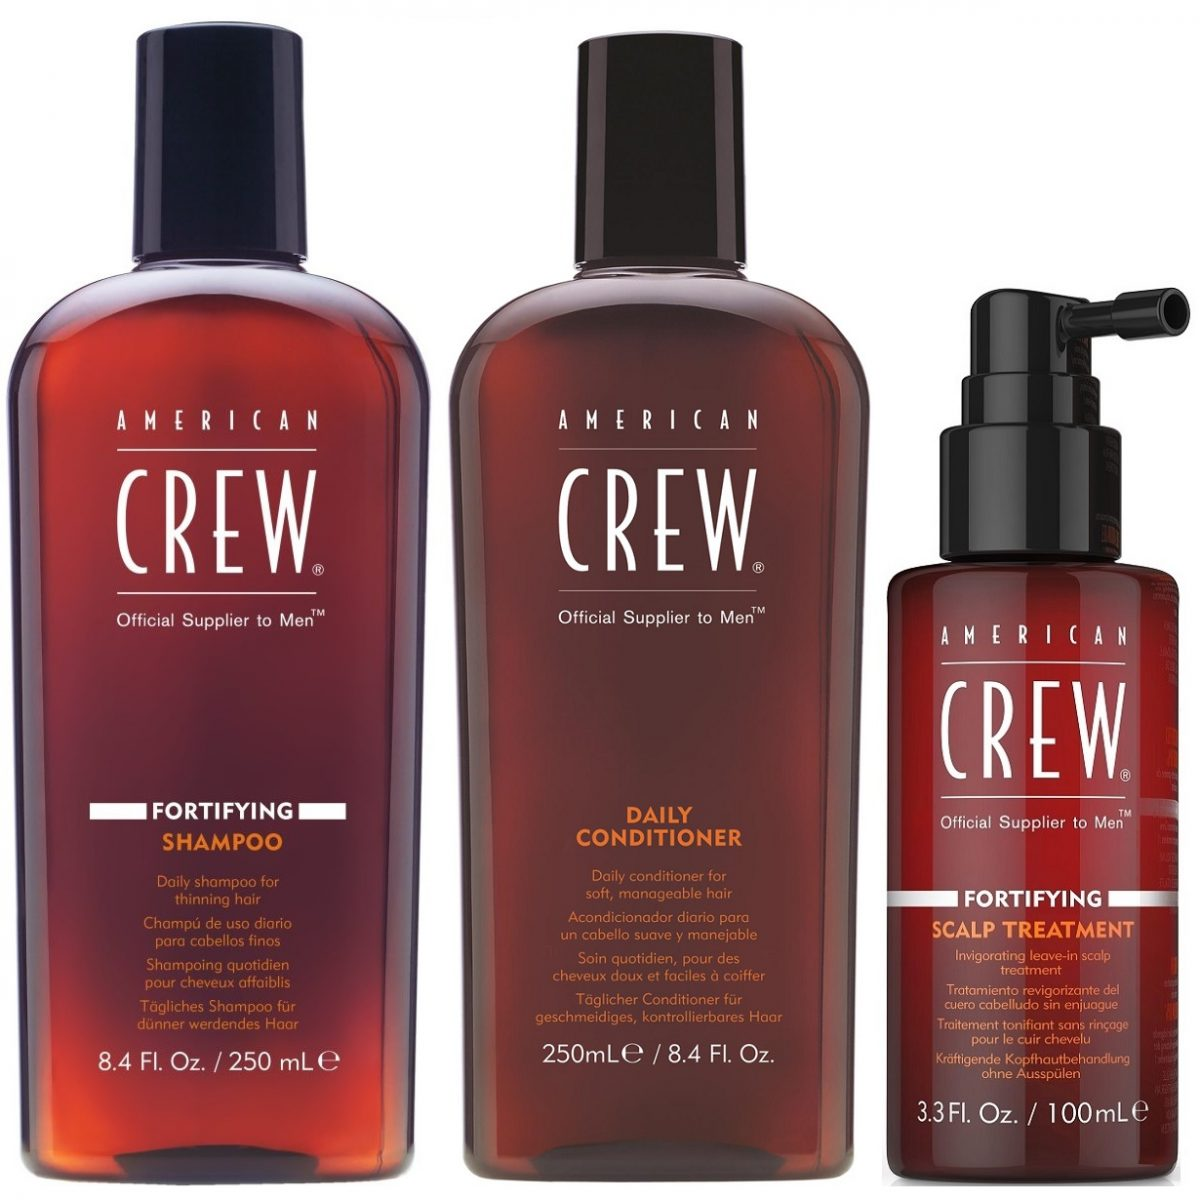 09_Emphase_american-crew-fortifying-shampoo-250-ml_daily_conditioner_250ml_Fortifying_Scalp_Treatment_100ml